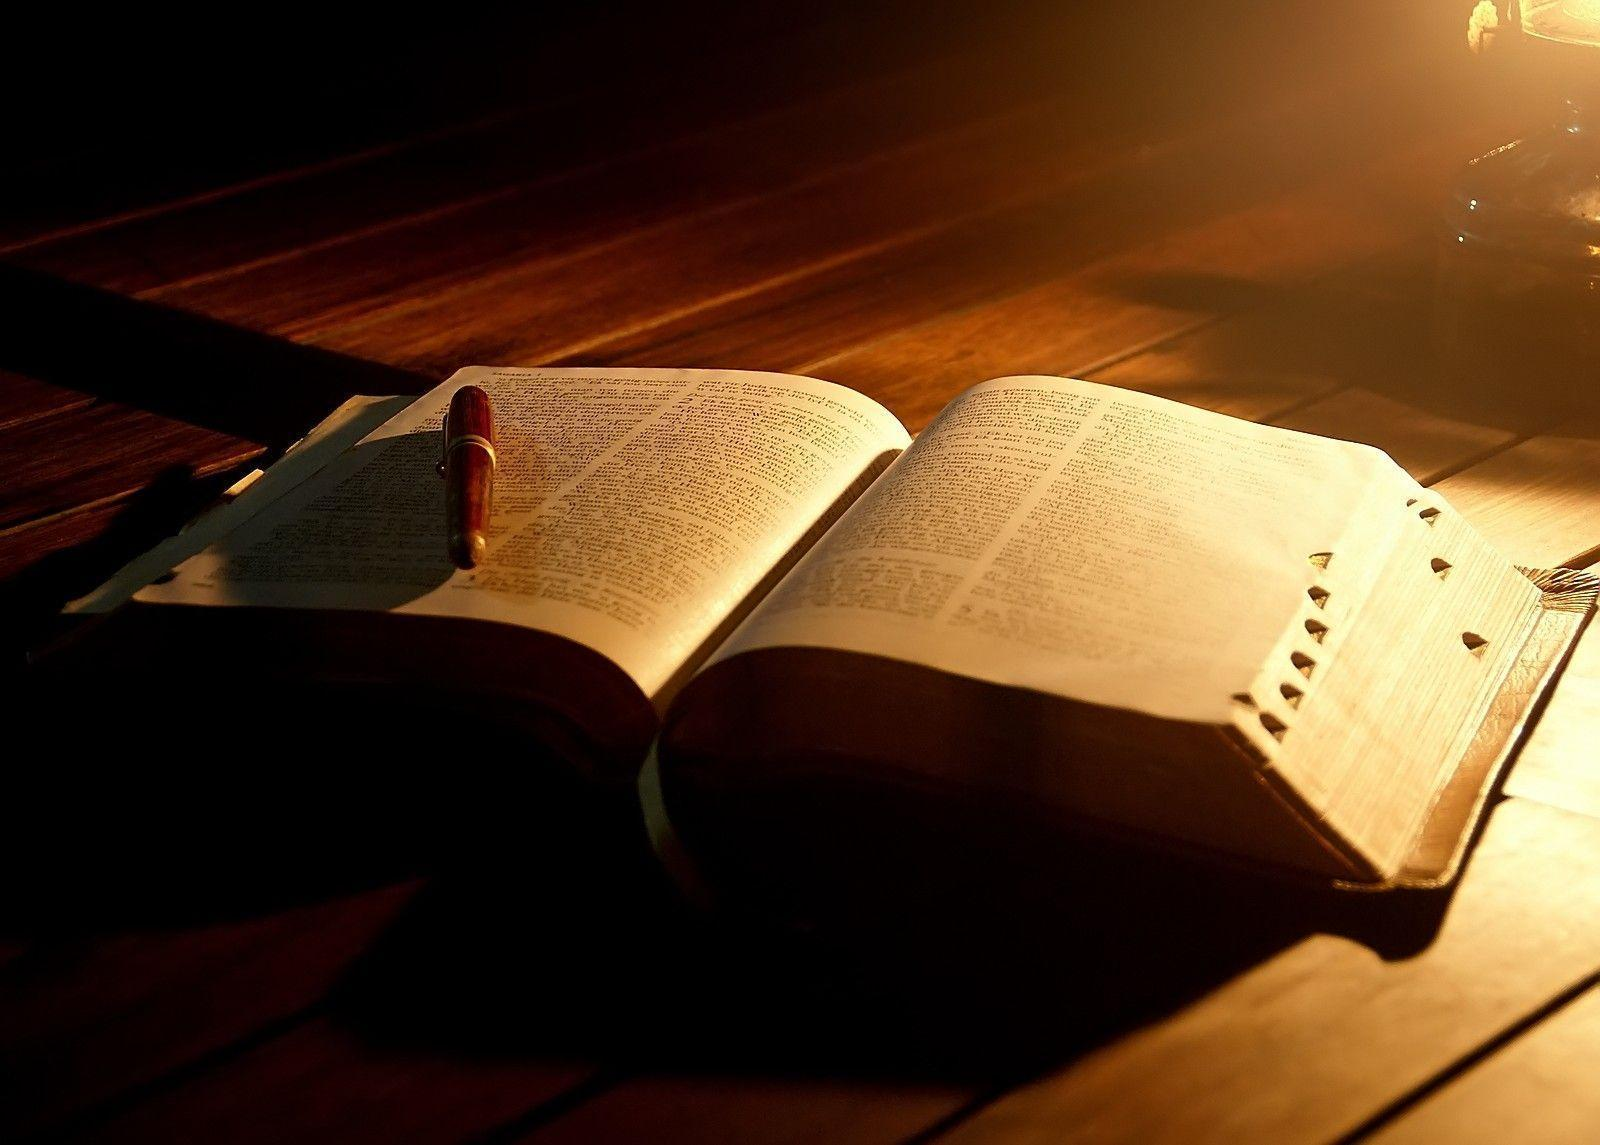 Bible Study Wallpapers Top Free Bible Study Backgrounds Wallpaperaccess